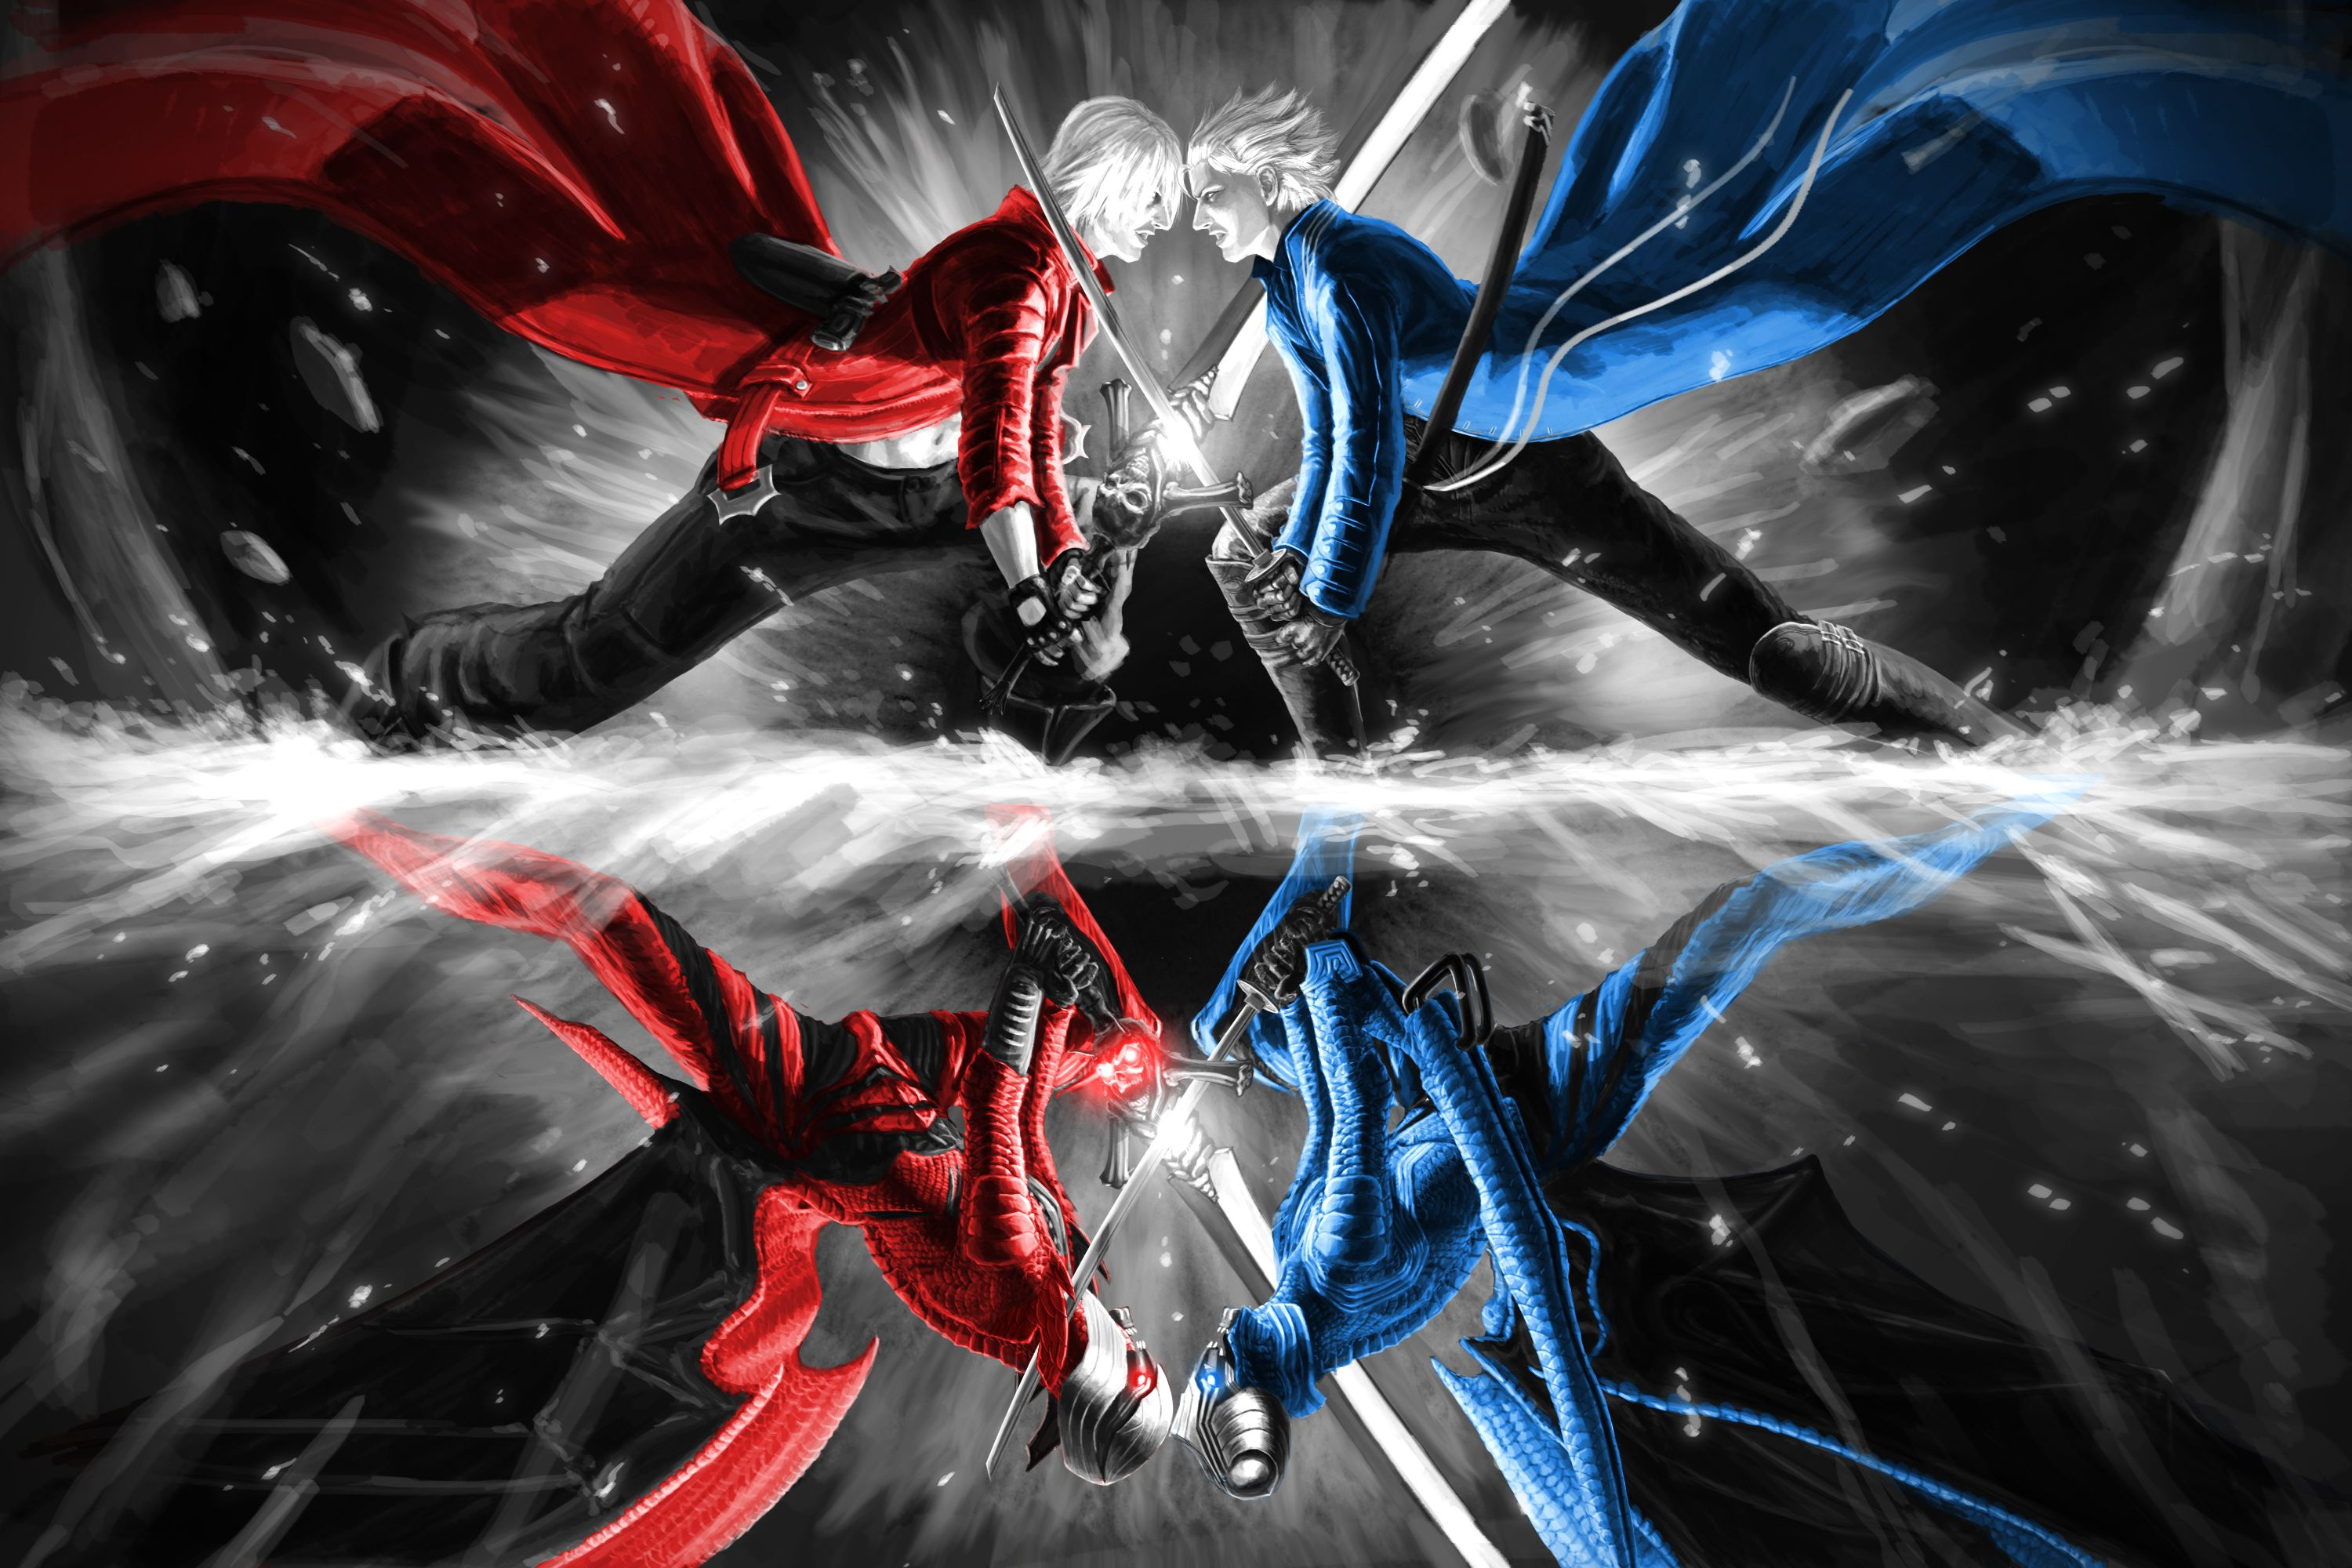 devil may cry 4 video games wallpaper | art | pinterest | crying